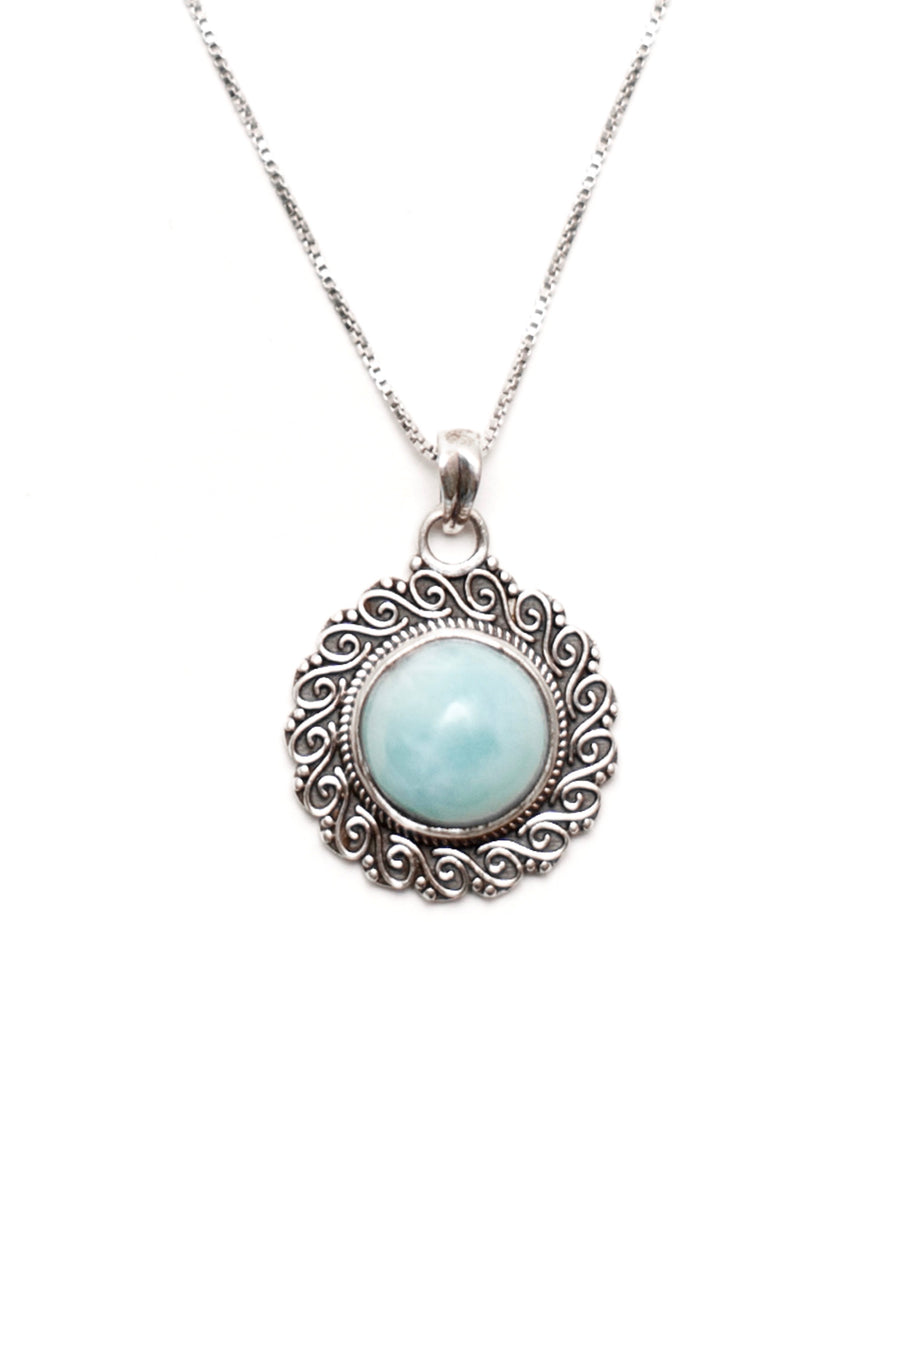 Pismo Necklace - Sterling Silver